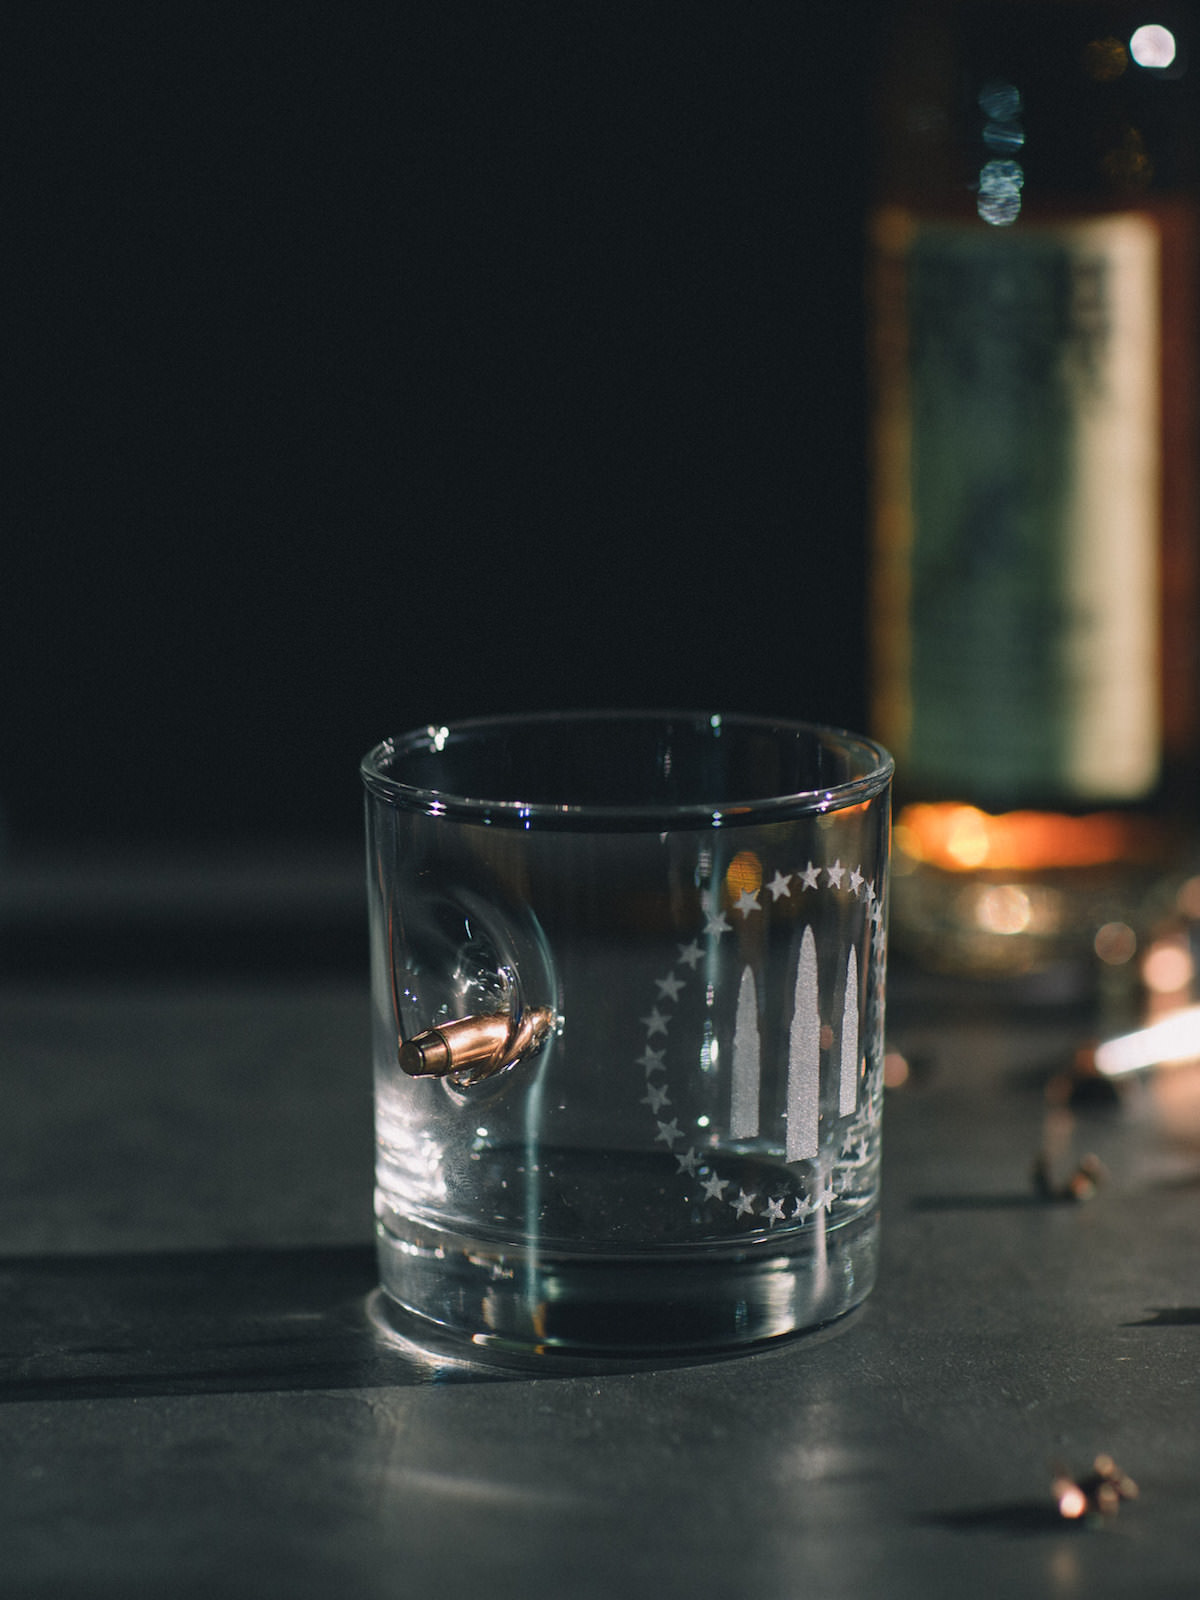 HAND MADE GALLANT BULLETS WHISKEY TUMBLER WITH REAL BULLET IN GLASS